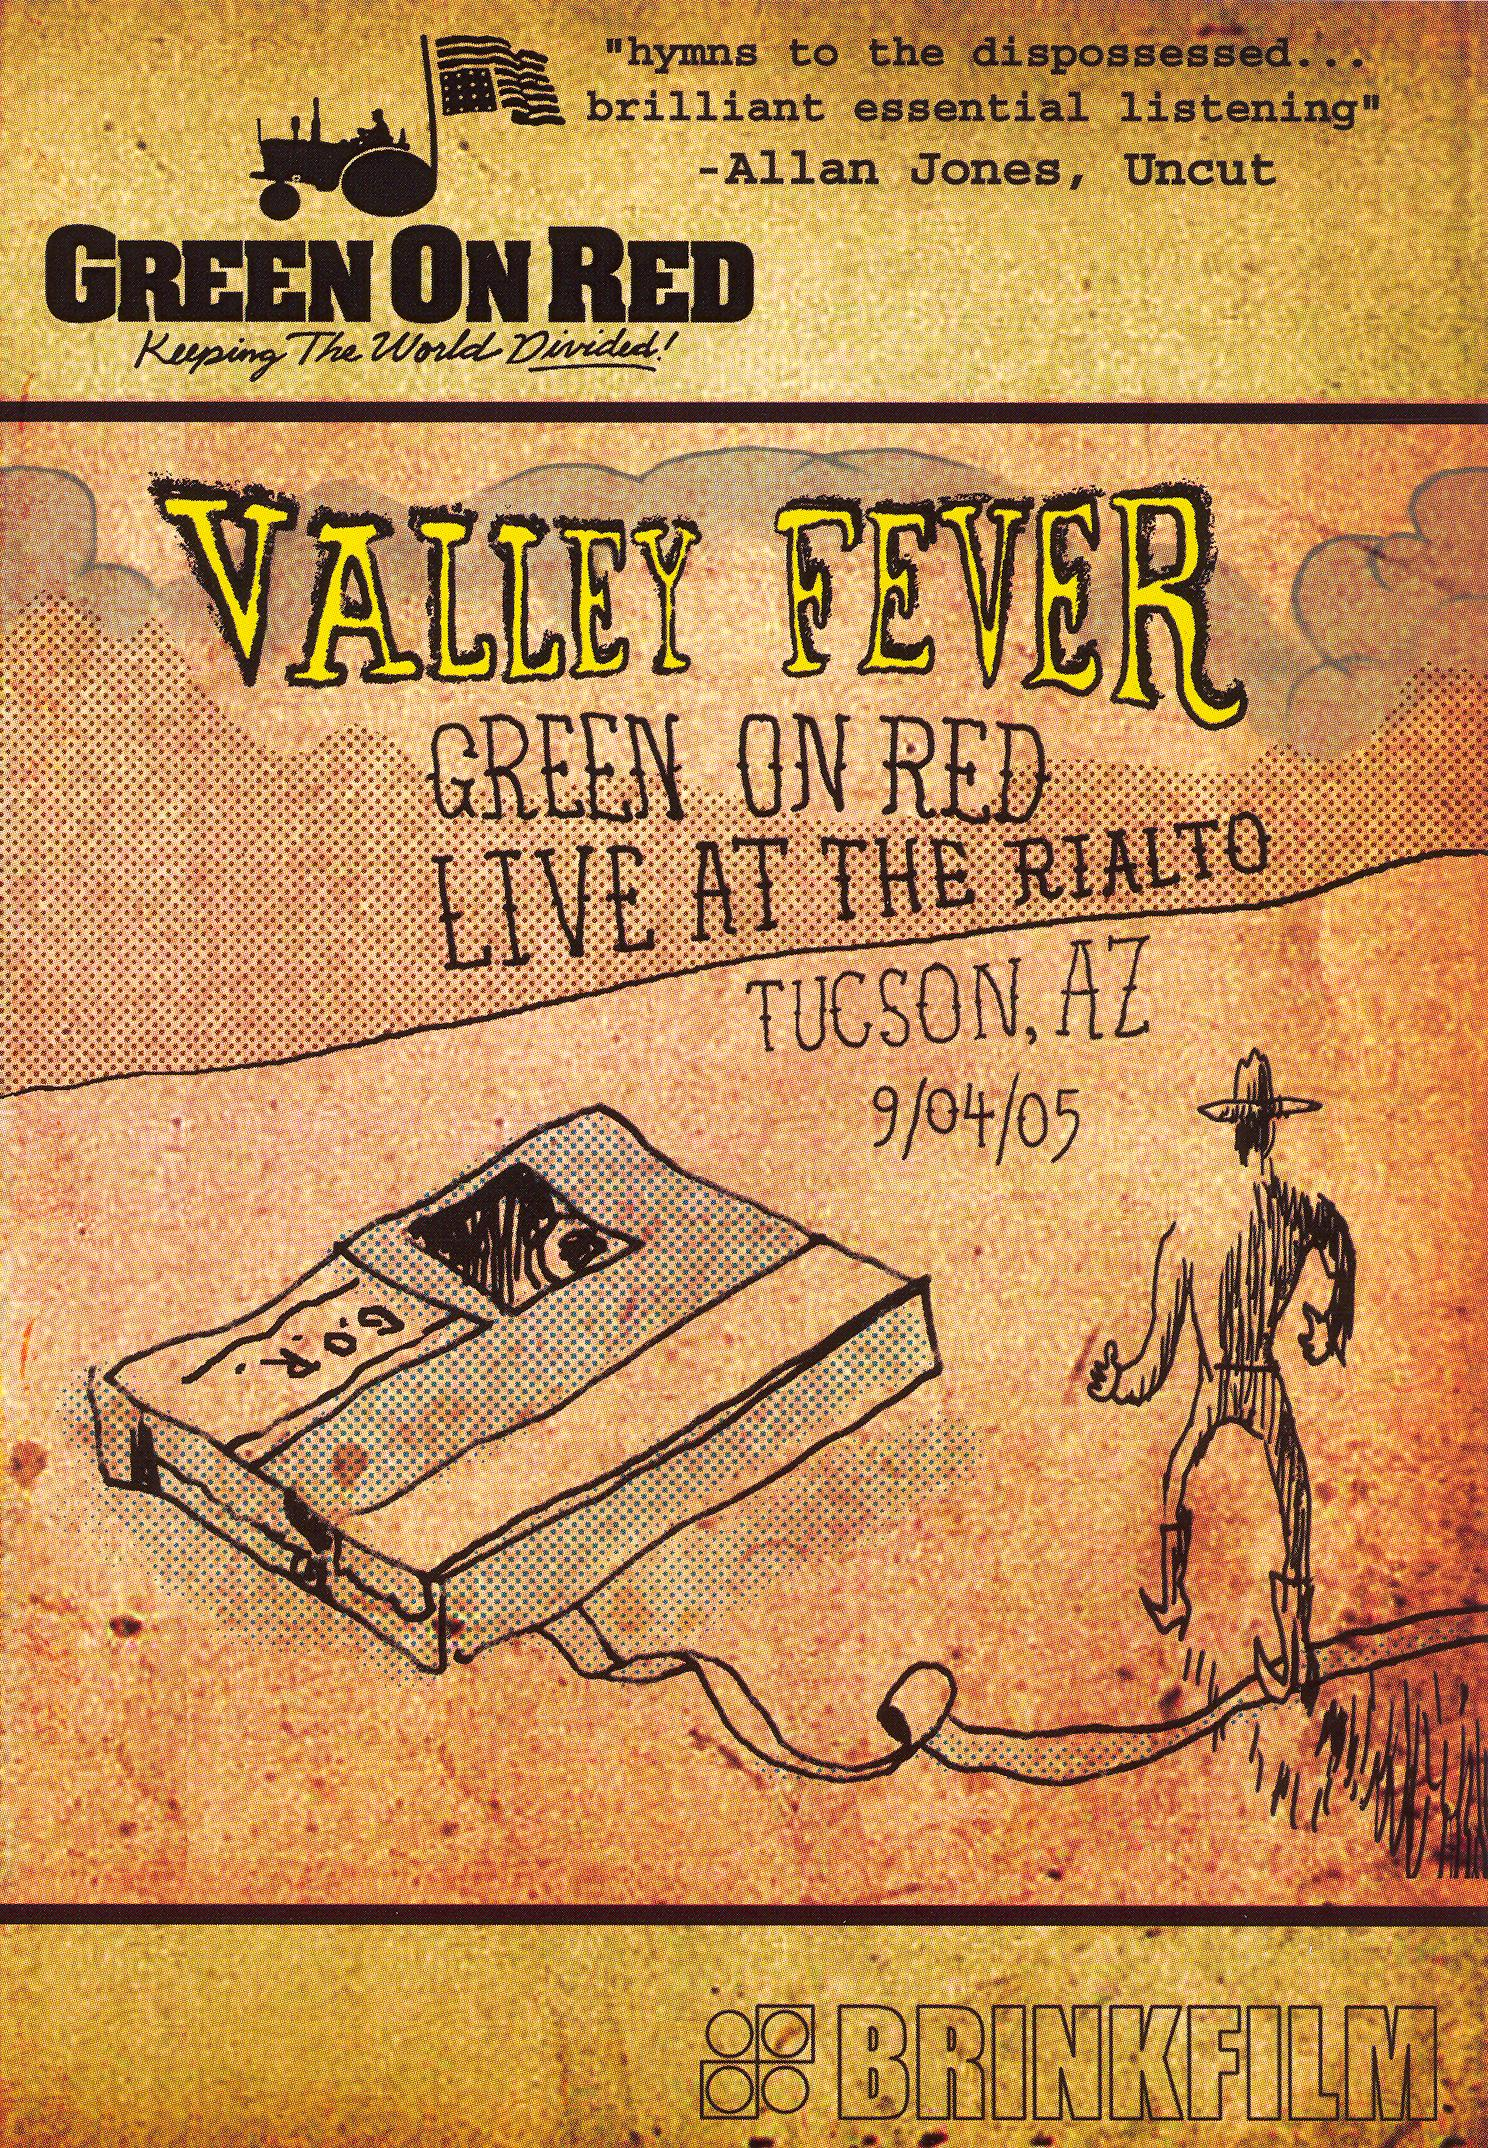 Green on Red: Valley Fever - Live at Rialto